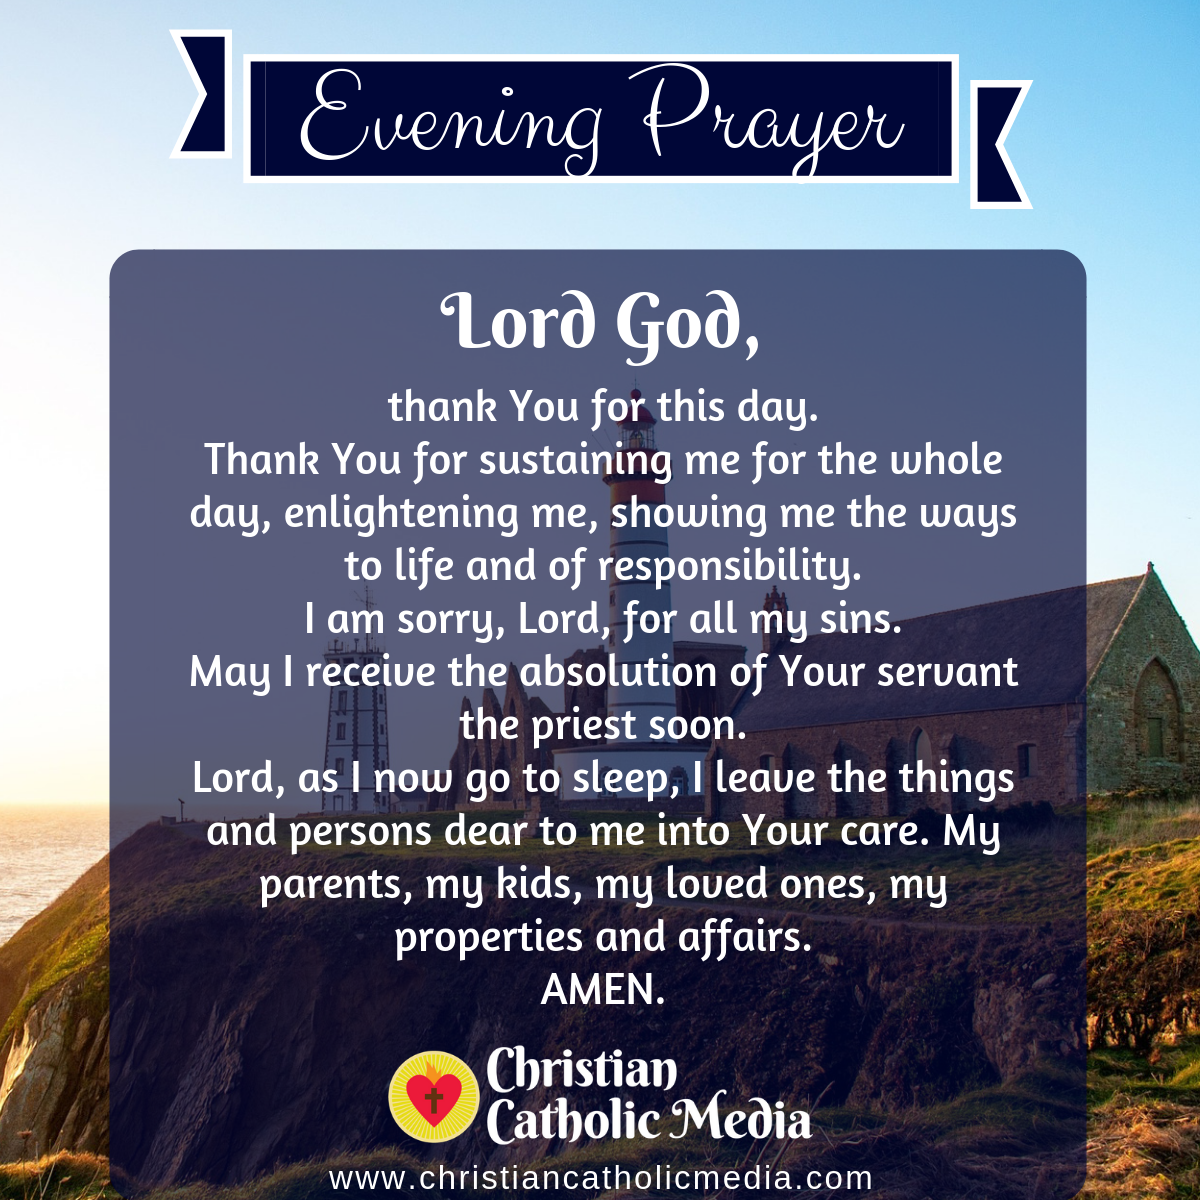 Evening Prayer Catholic Friday 6-26-2020